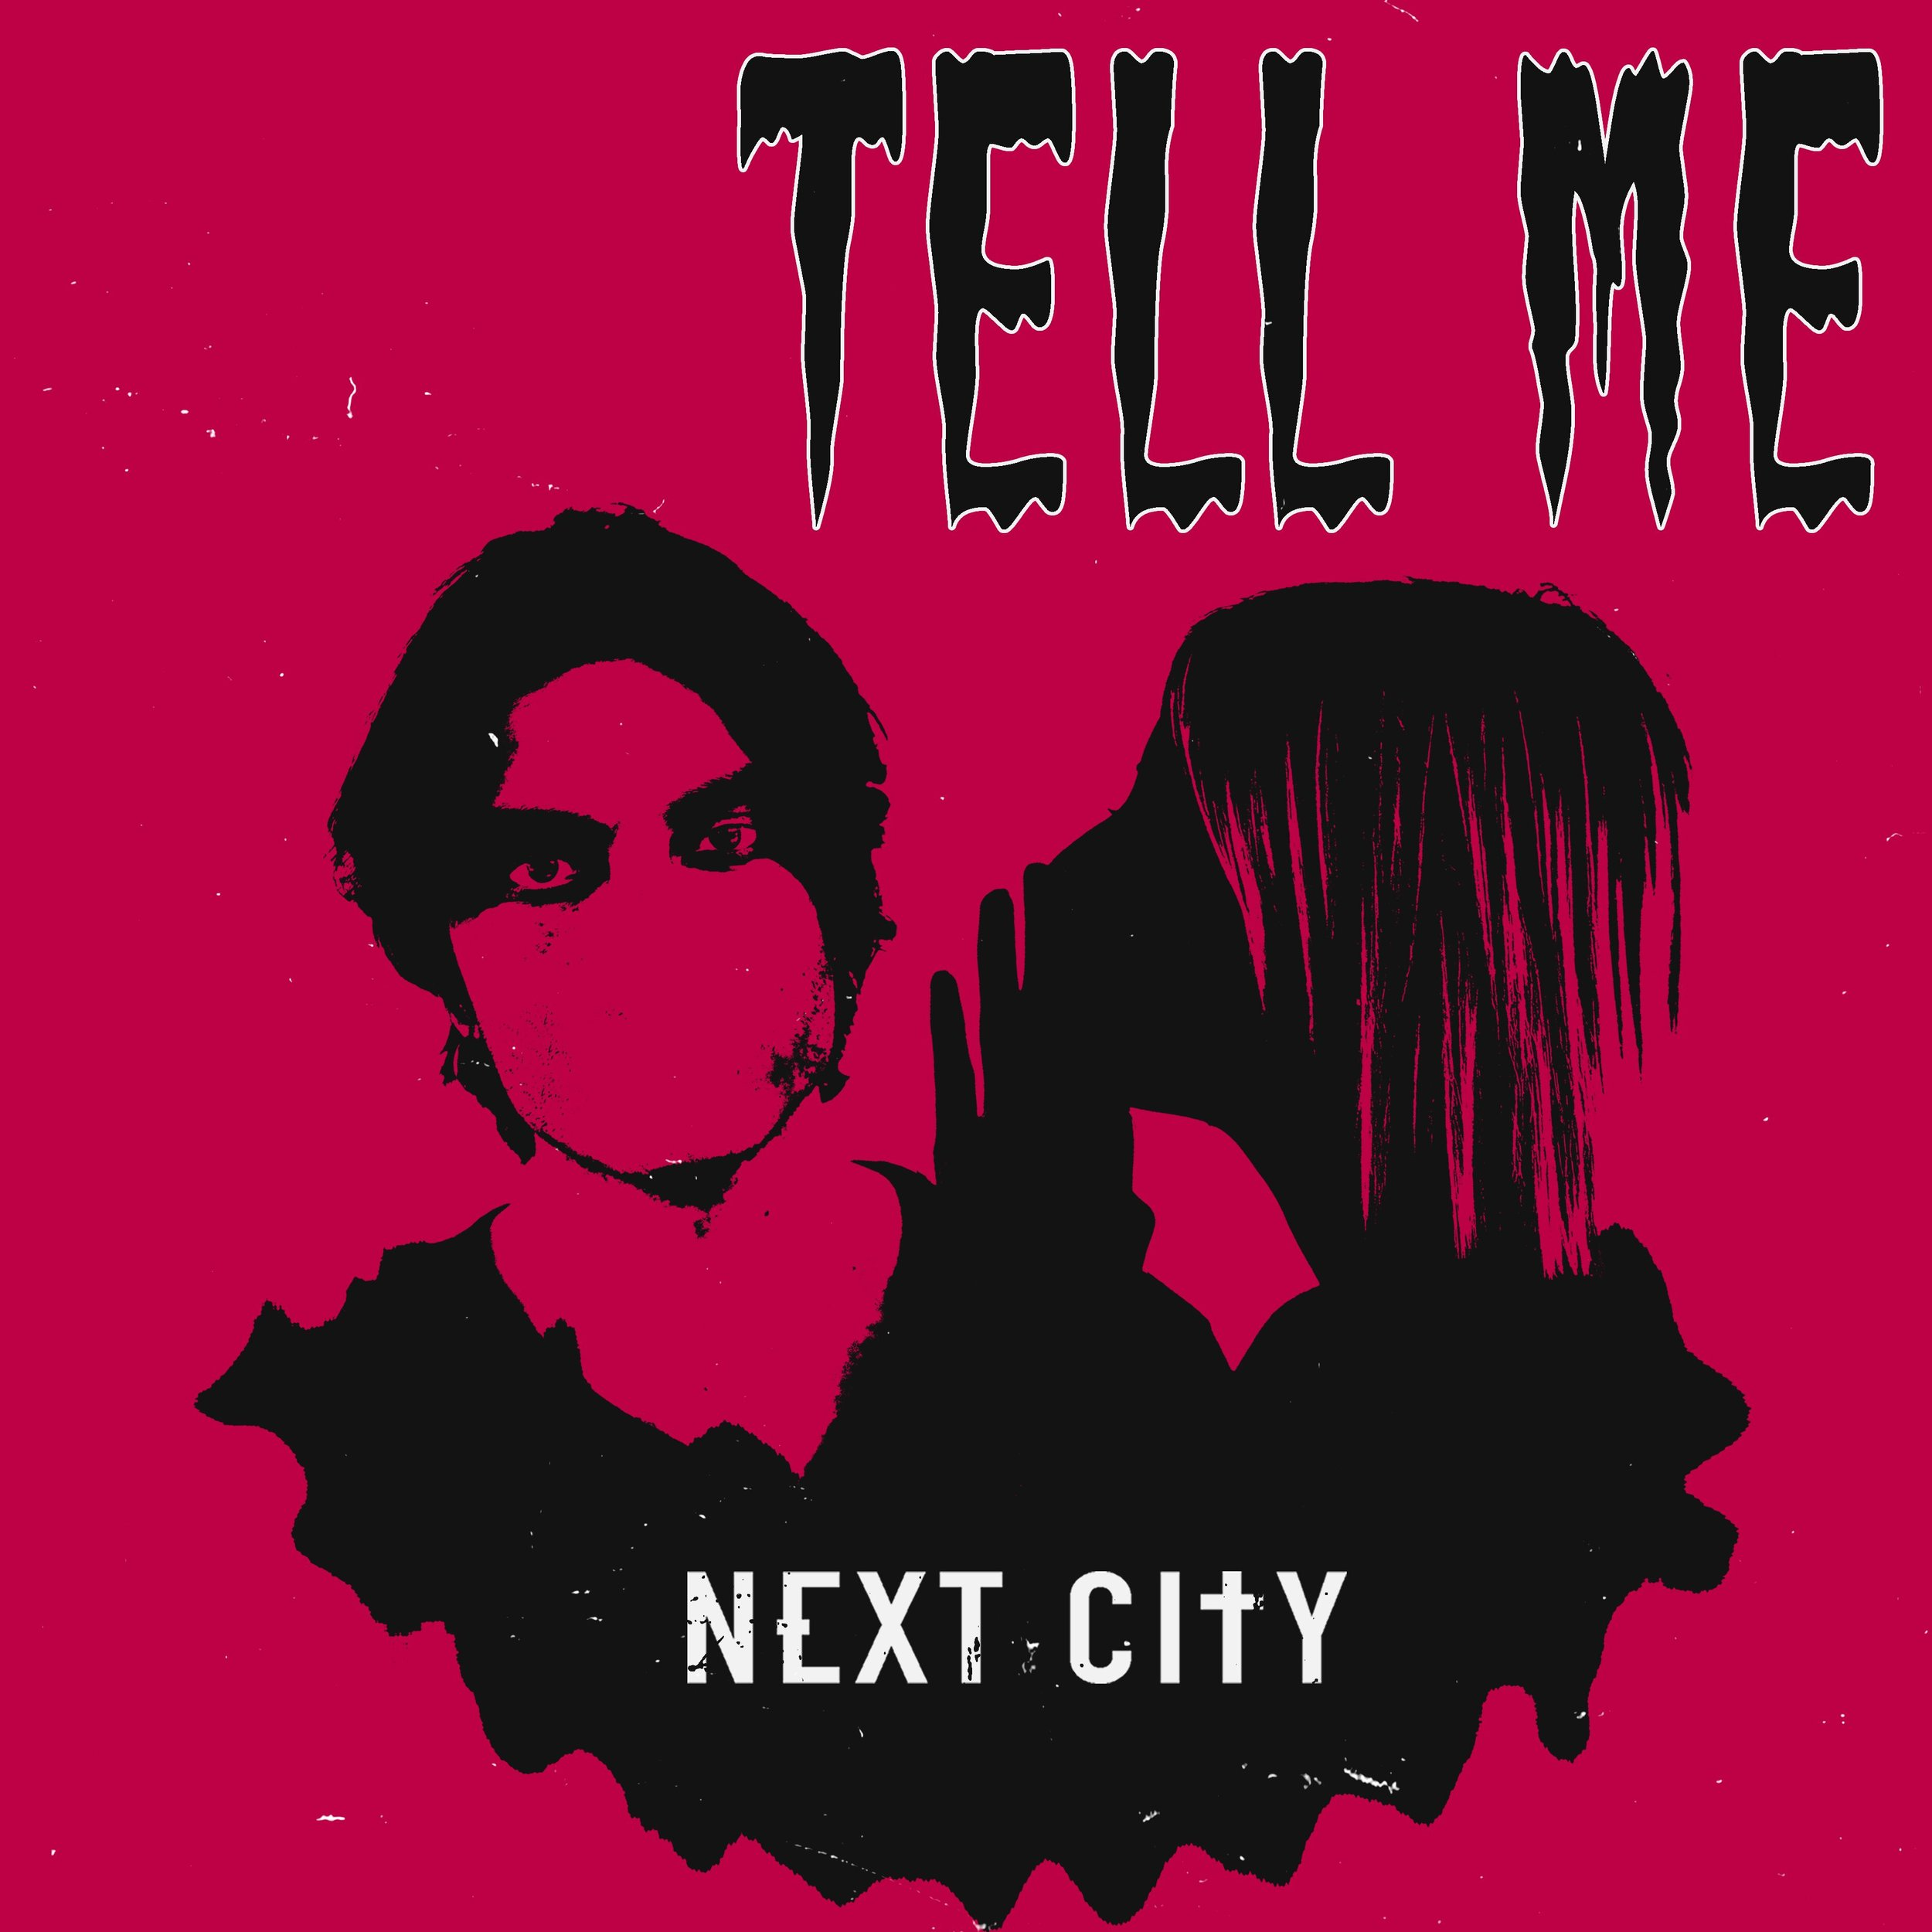 next-city-tell-me.jpg